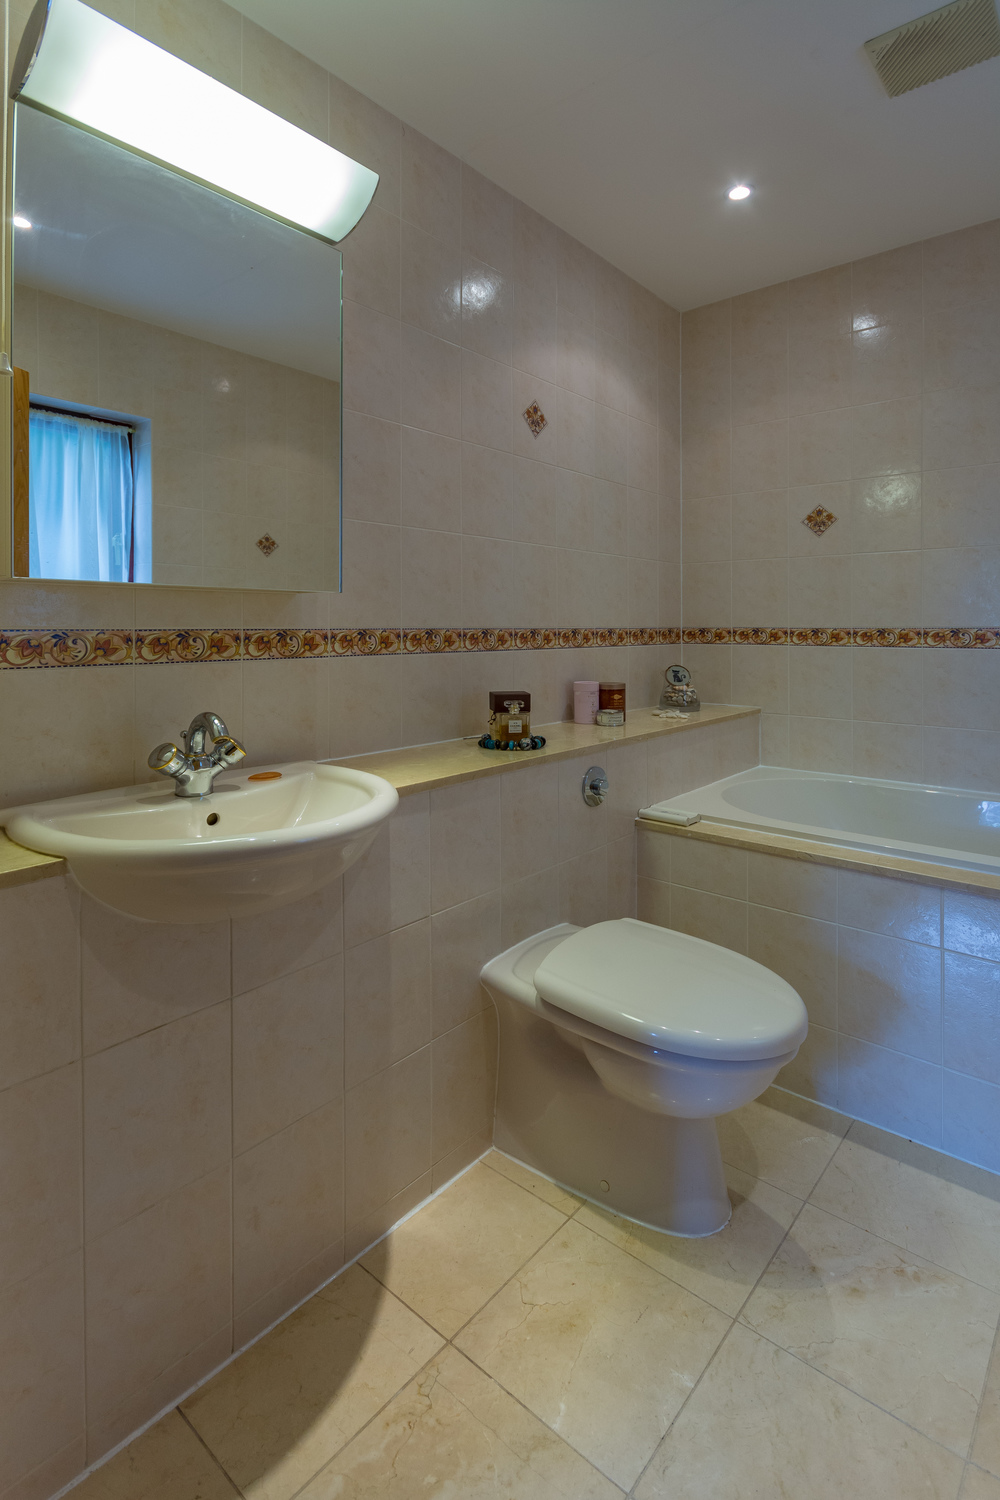 Ensuite Bathroom 1 - Beech Nook Thornthwaite, Keswick Holidays Self Catering.jpg